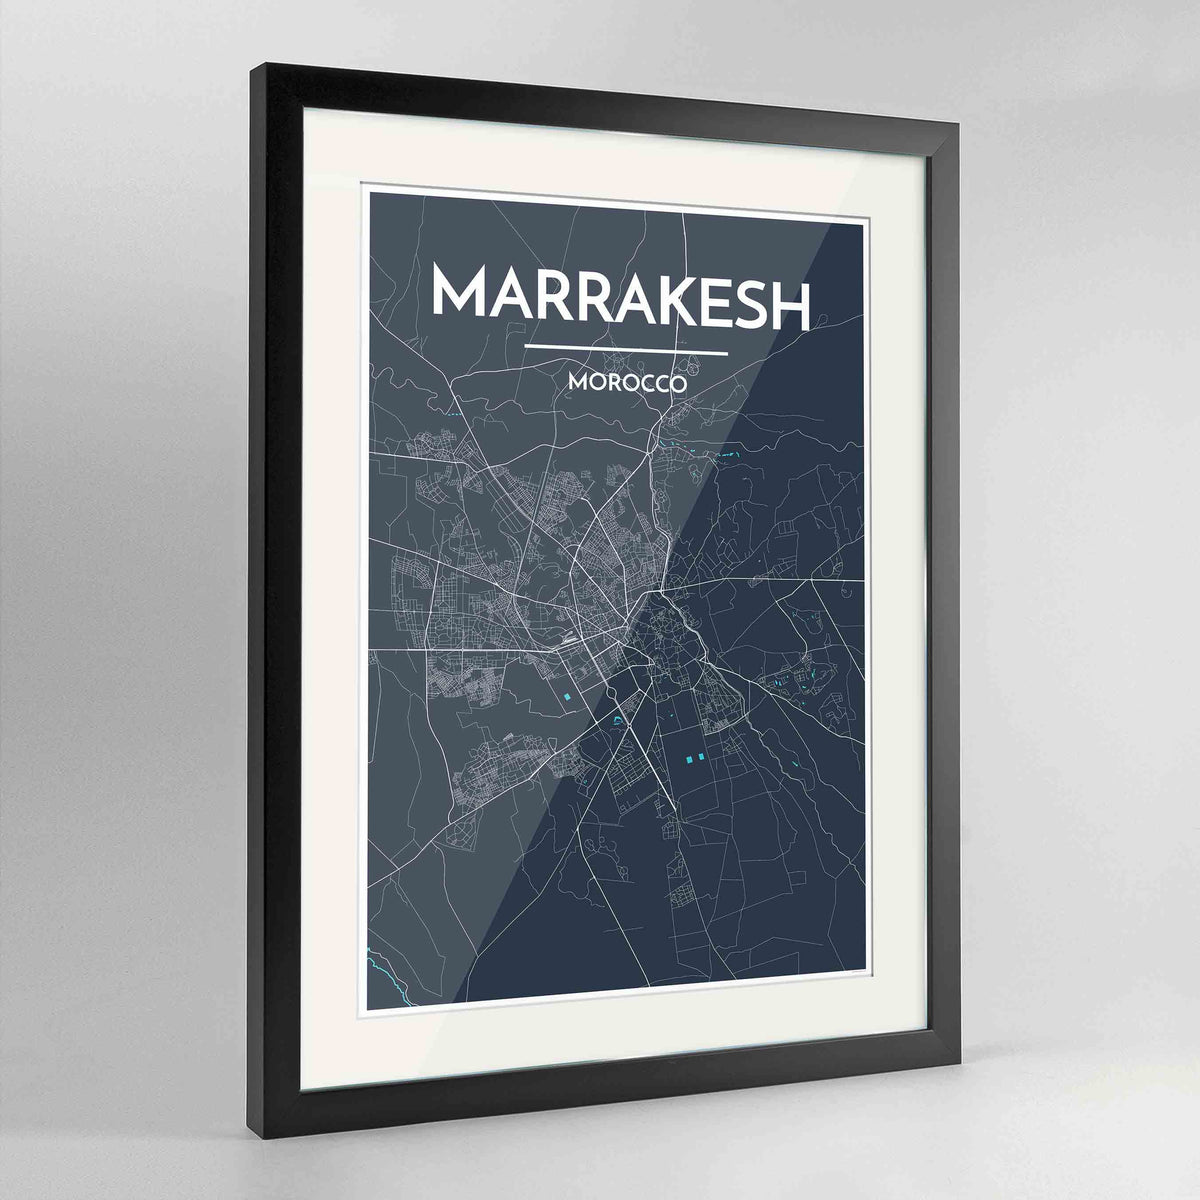 "Framed Marrakesh Map Art Print 24x36"" Contemporary Black frame Point Two Design Group"